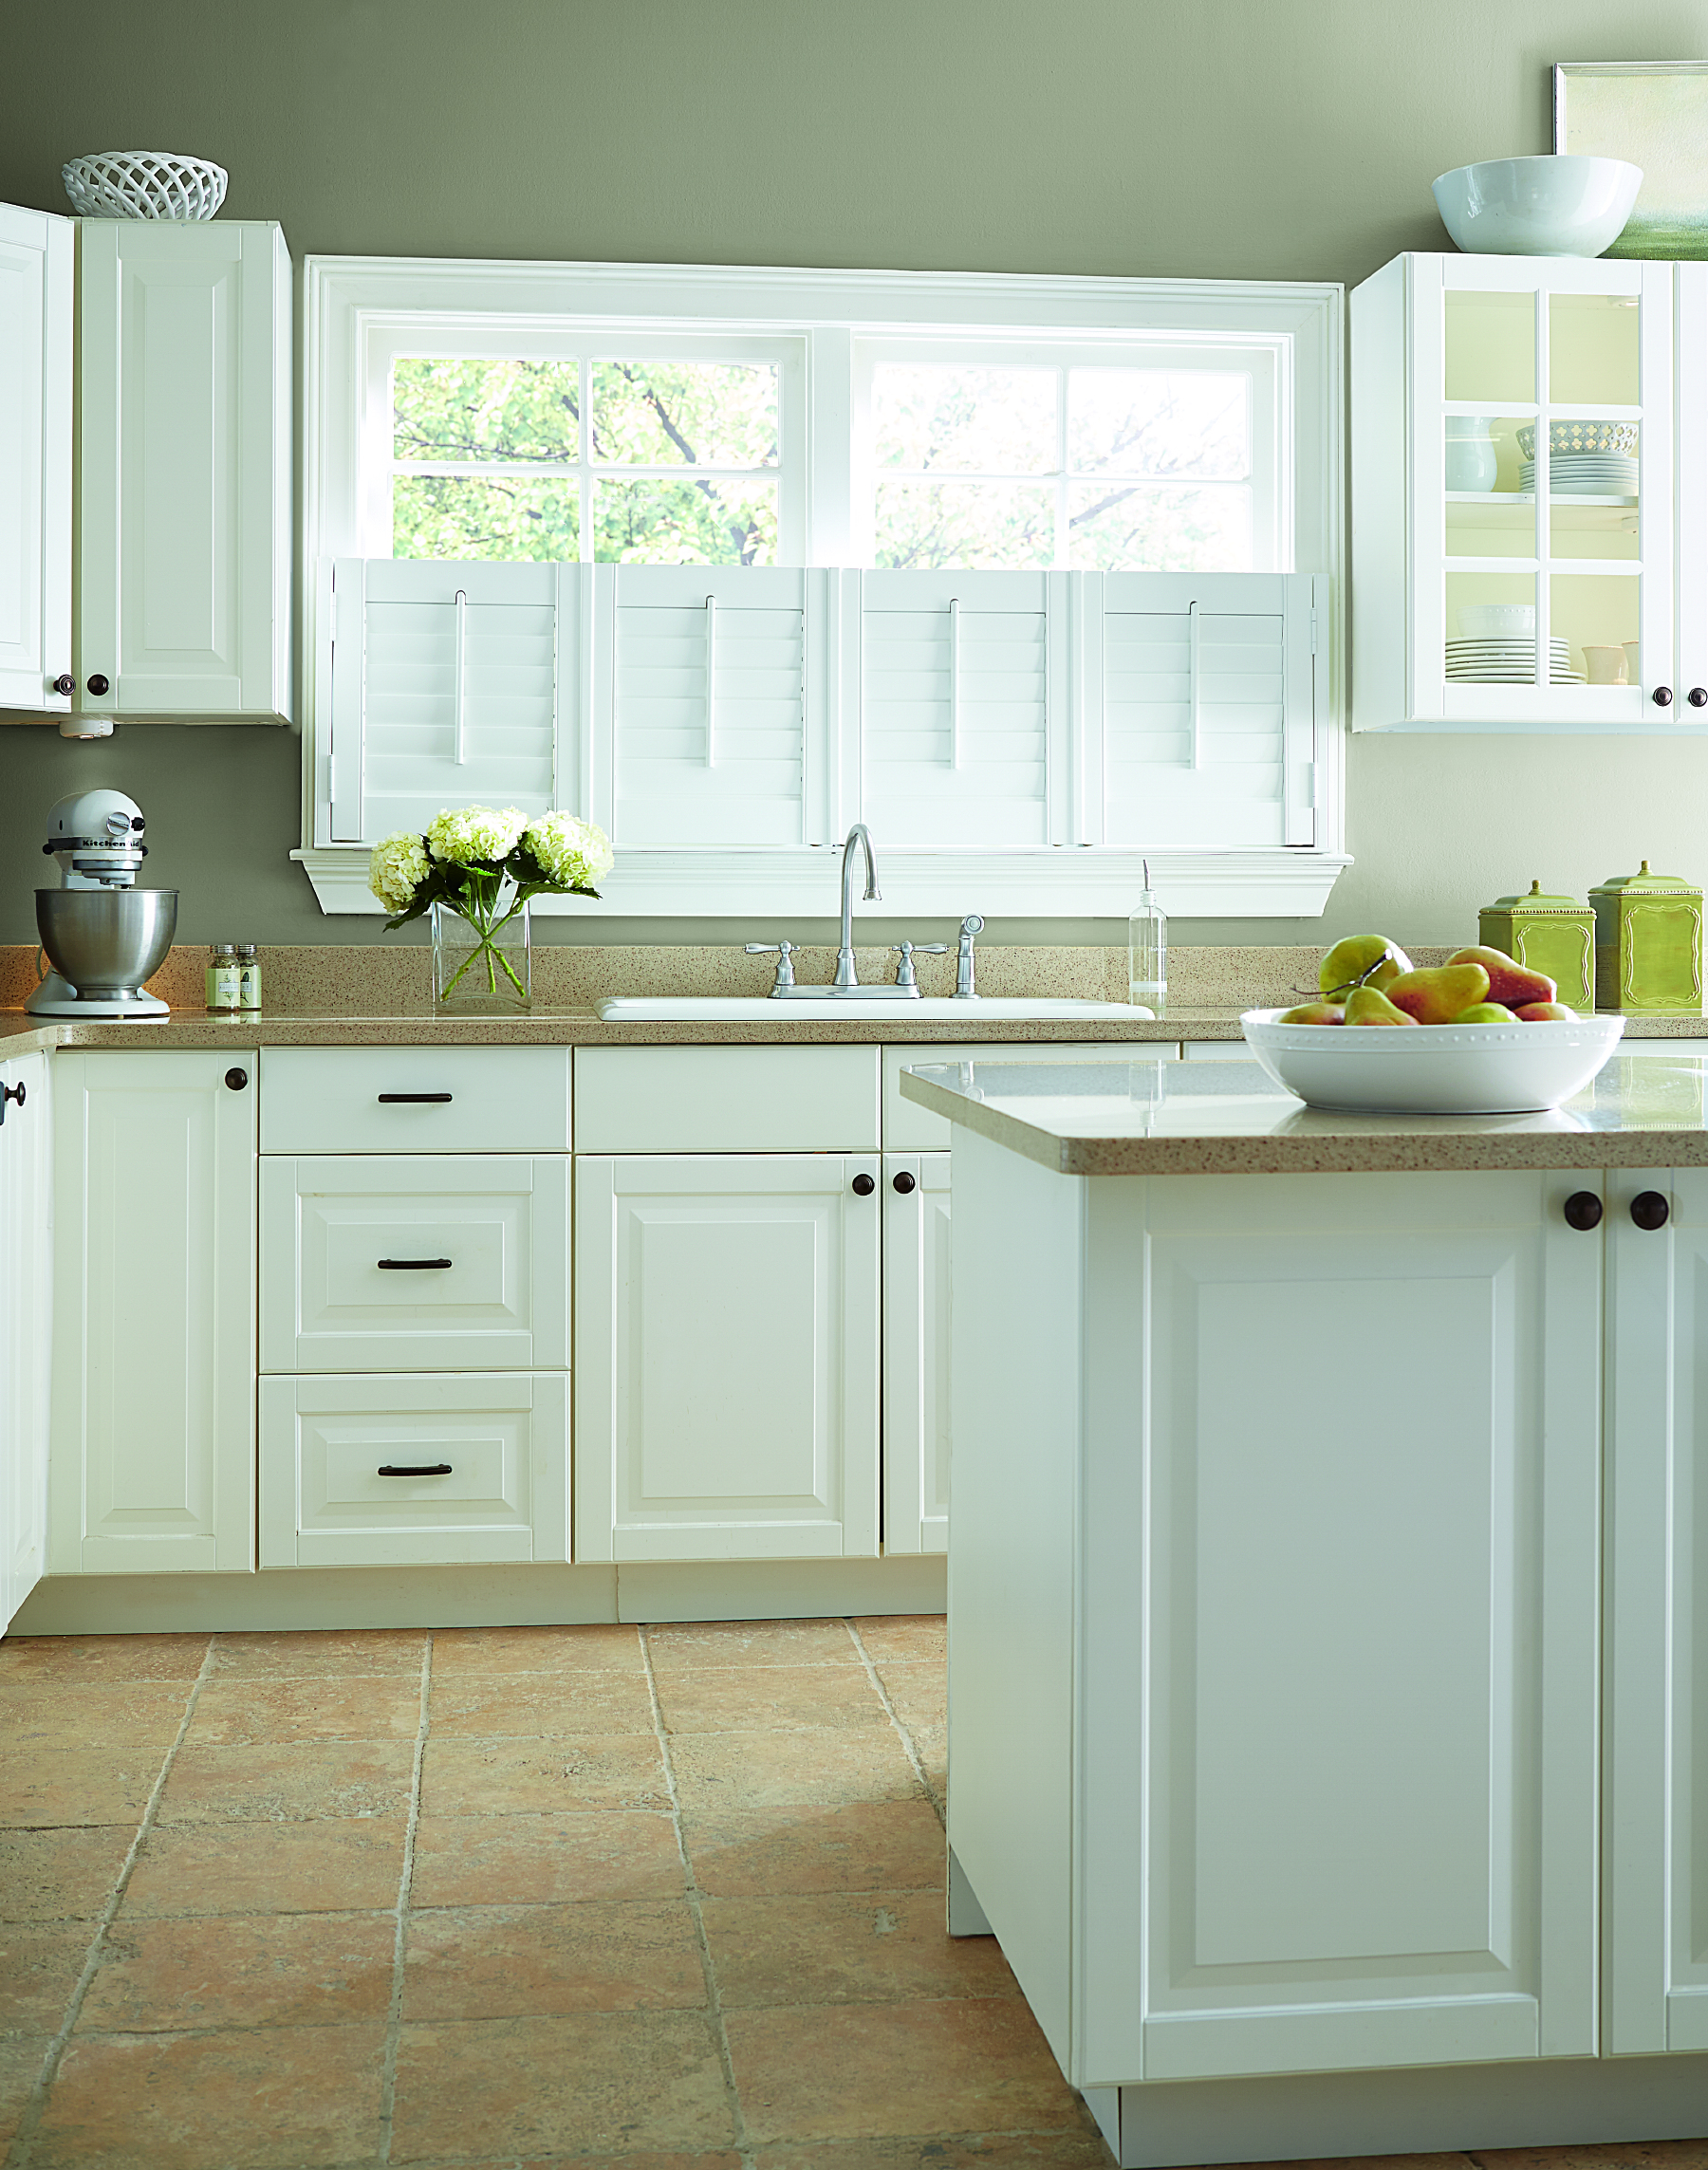 water resistant they a kitchen composite shutters pin re the interior perfect treatment for window are